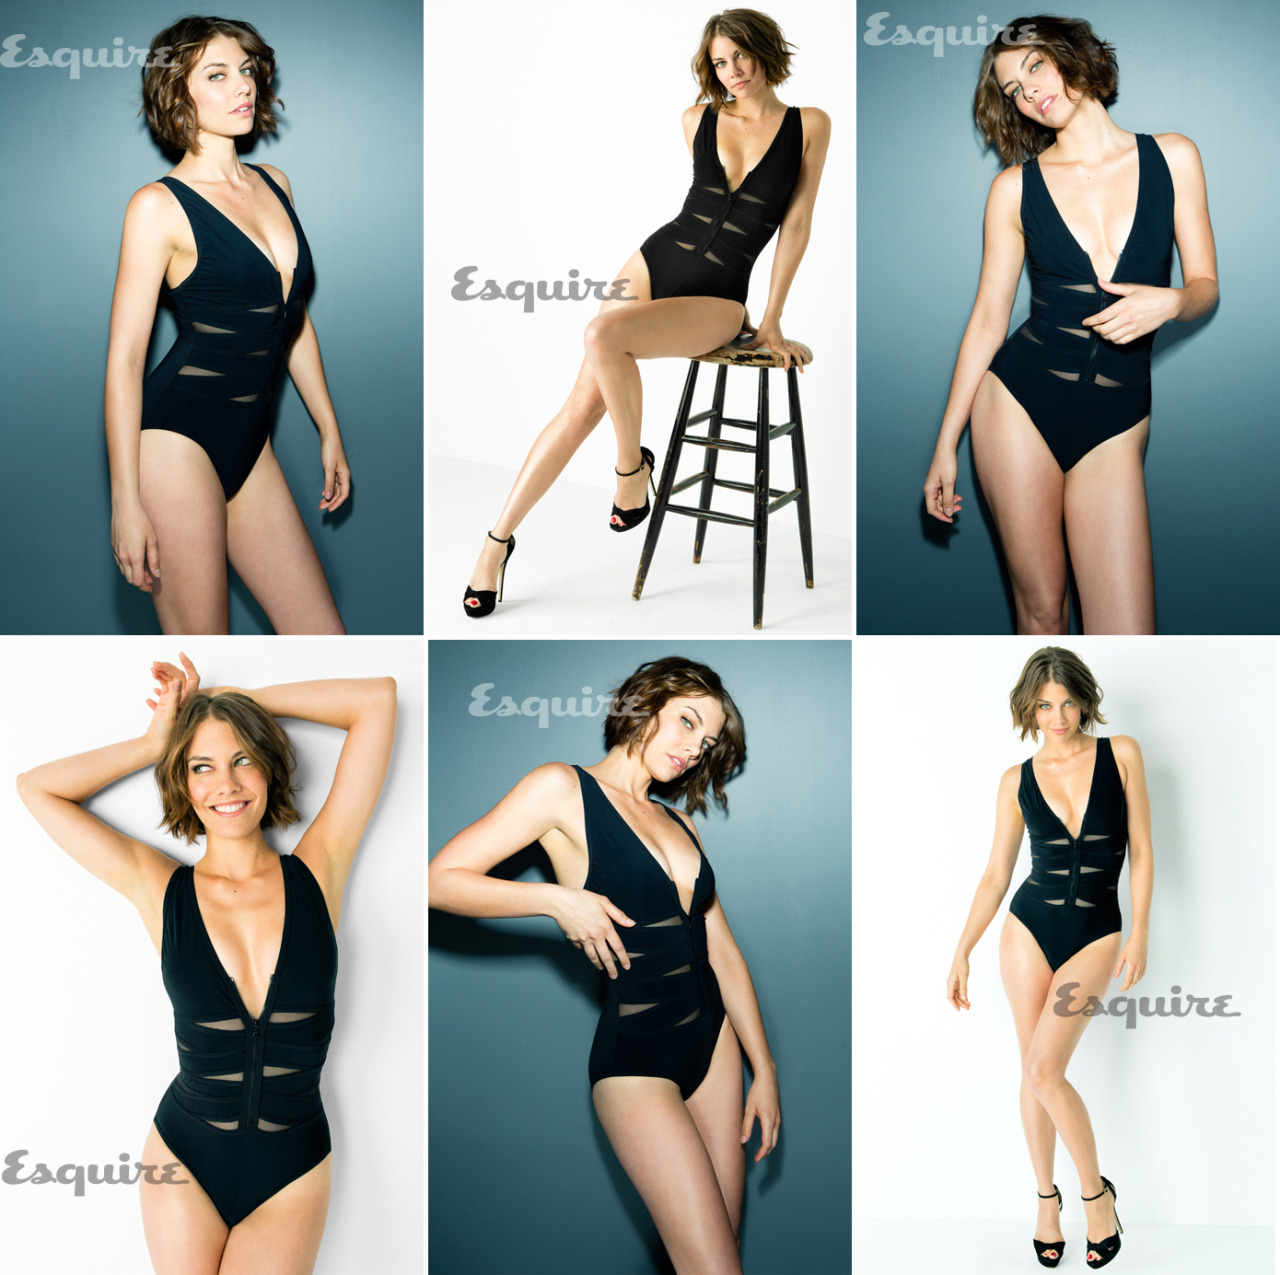 pussylequeer:  Lauren Cohan - Esquire by Ari Michelson, February 2013